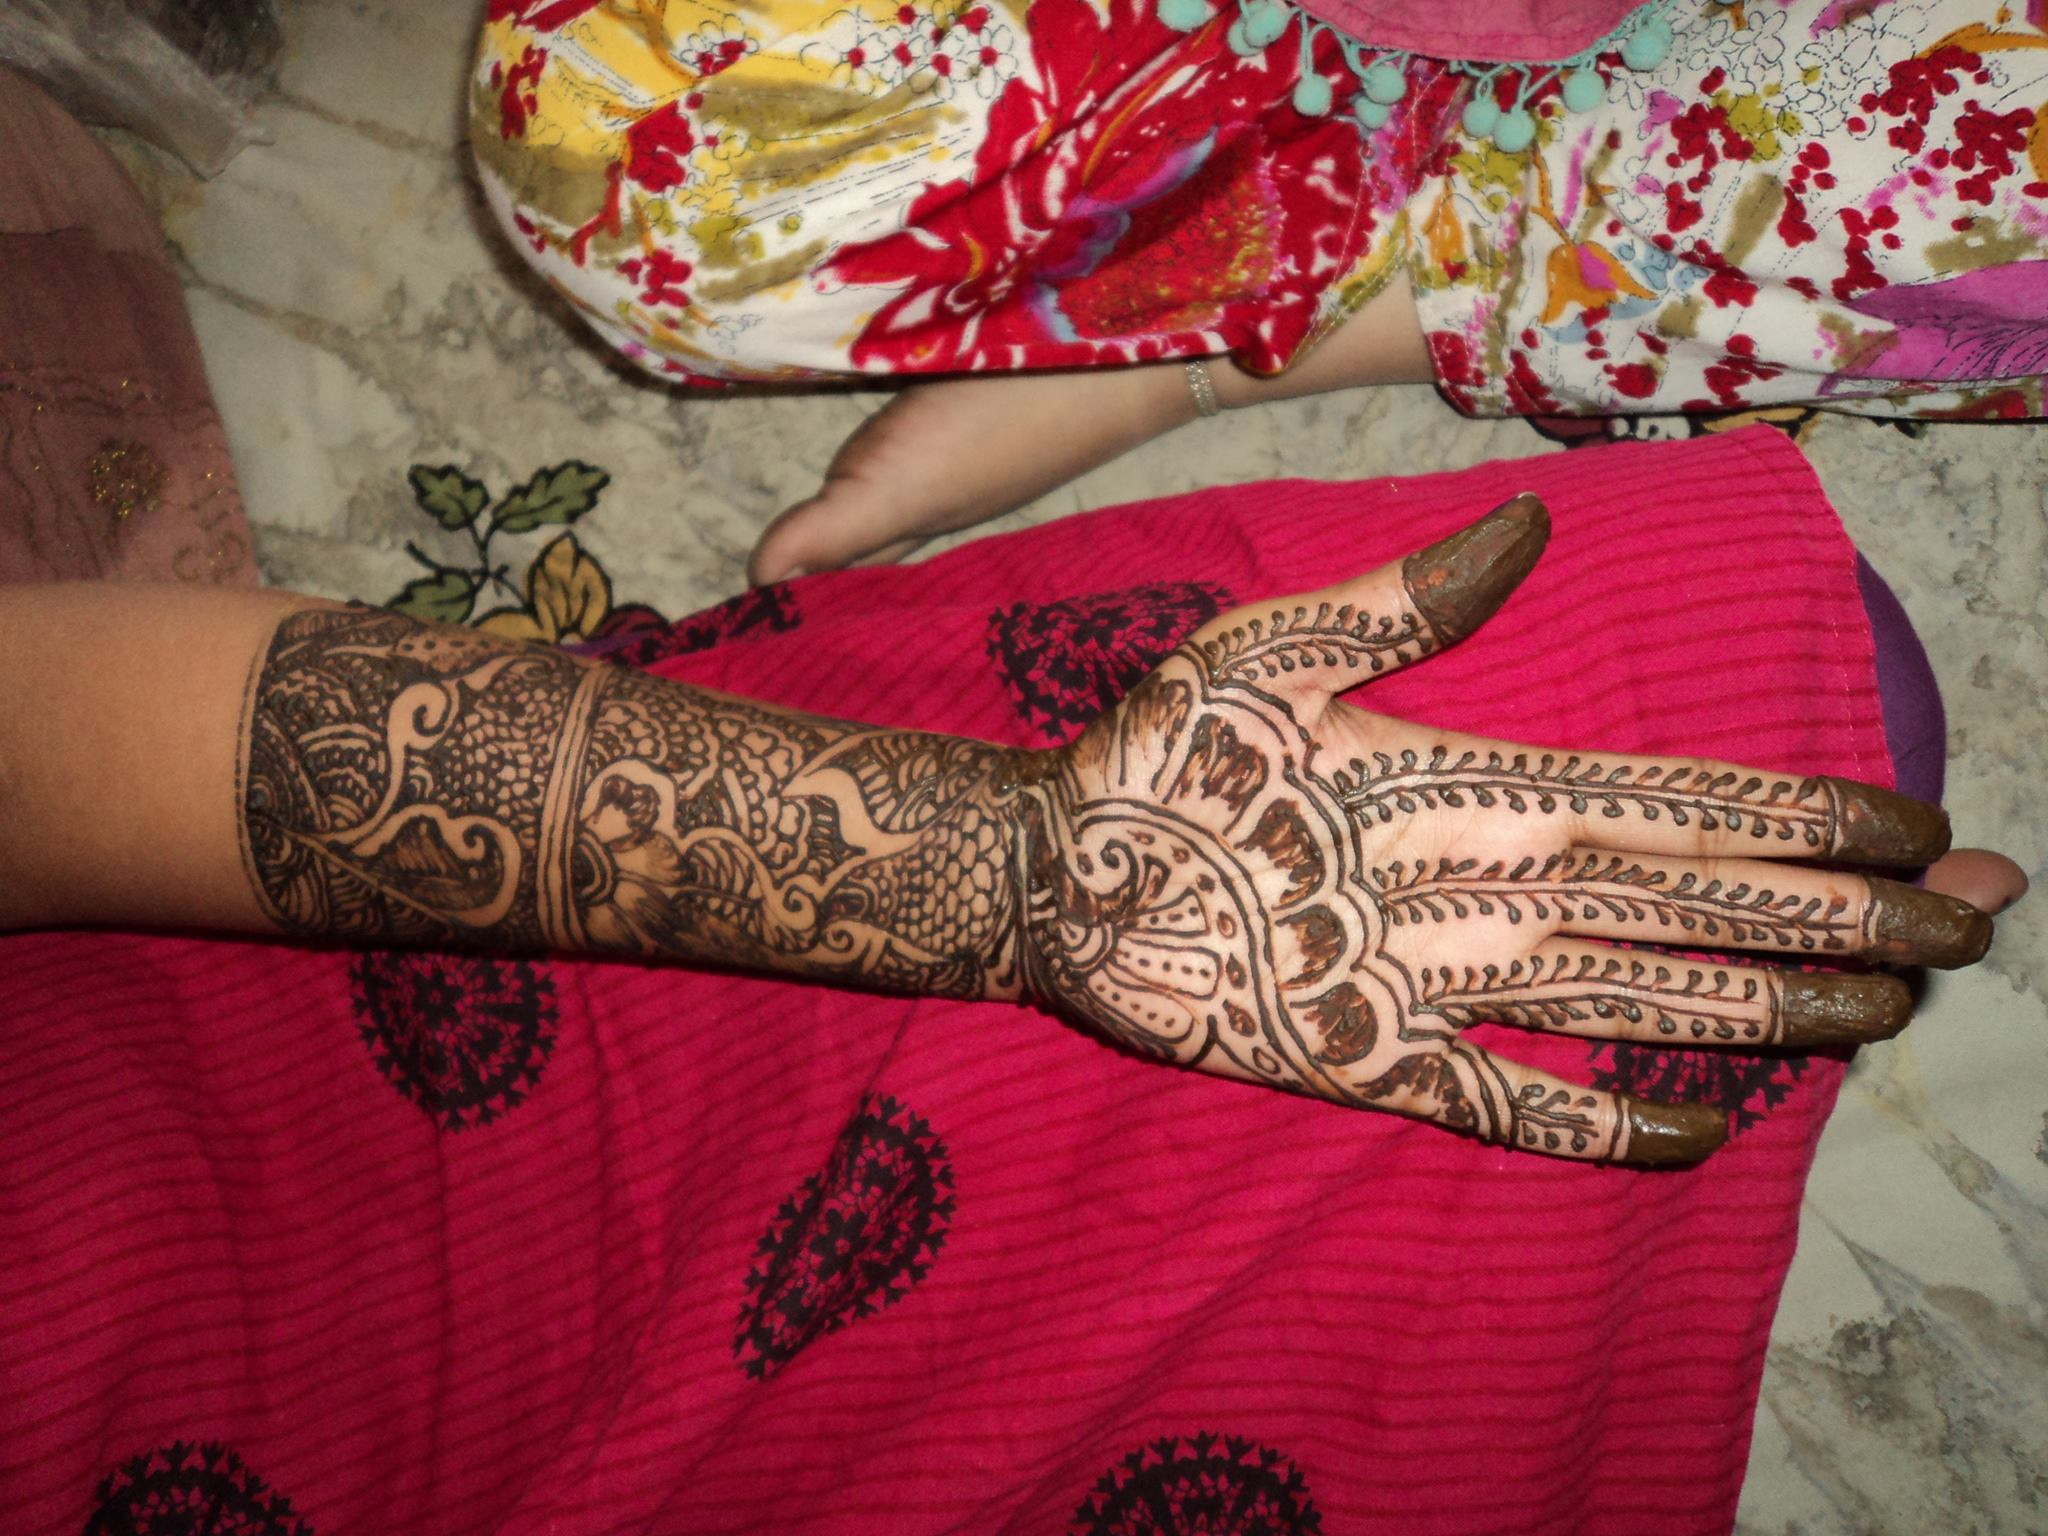 Beautiful henna tattoo!